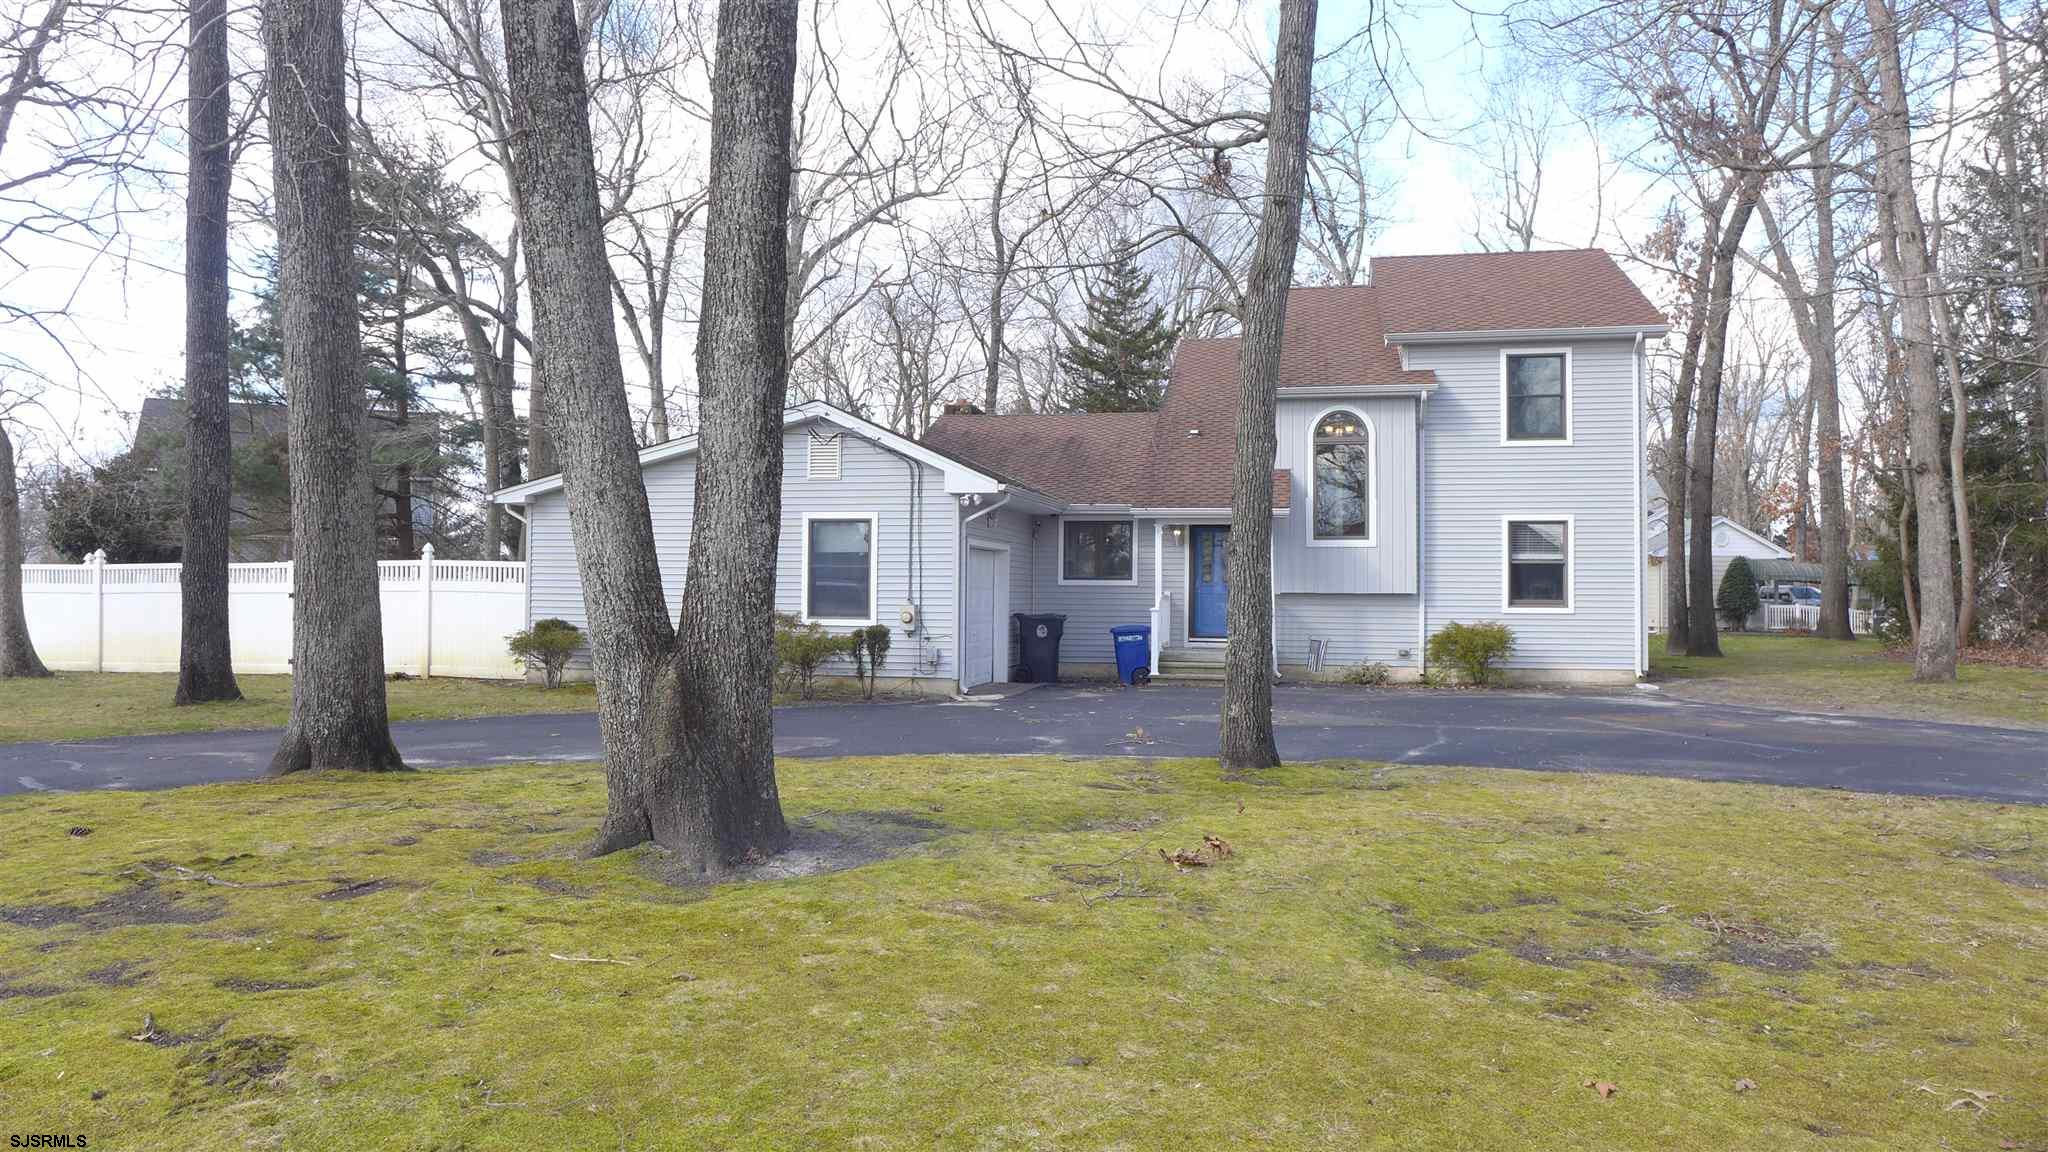 What an opportunity to get into this 3 bedroom 2.5 bath home near the center of town. This is a move